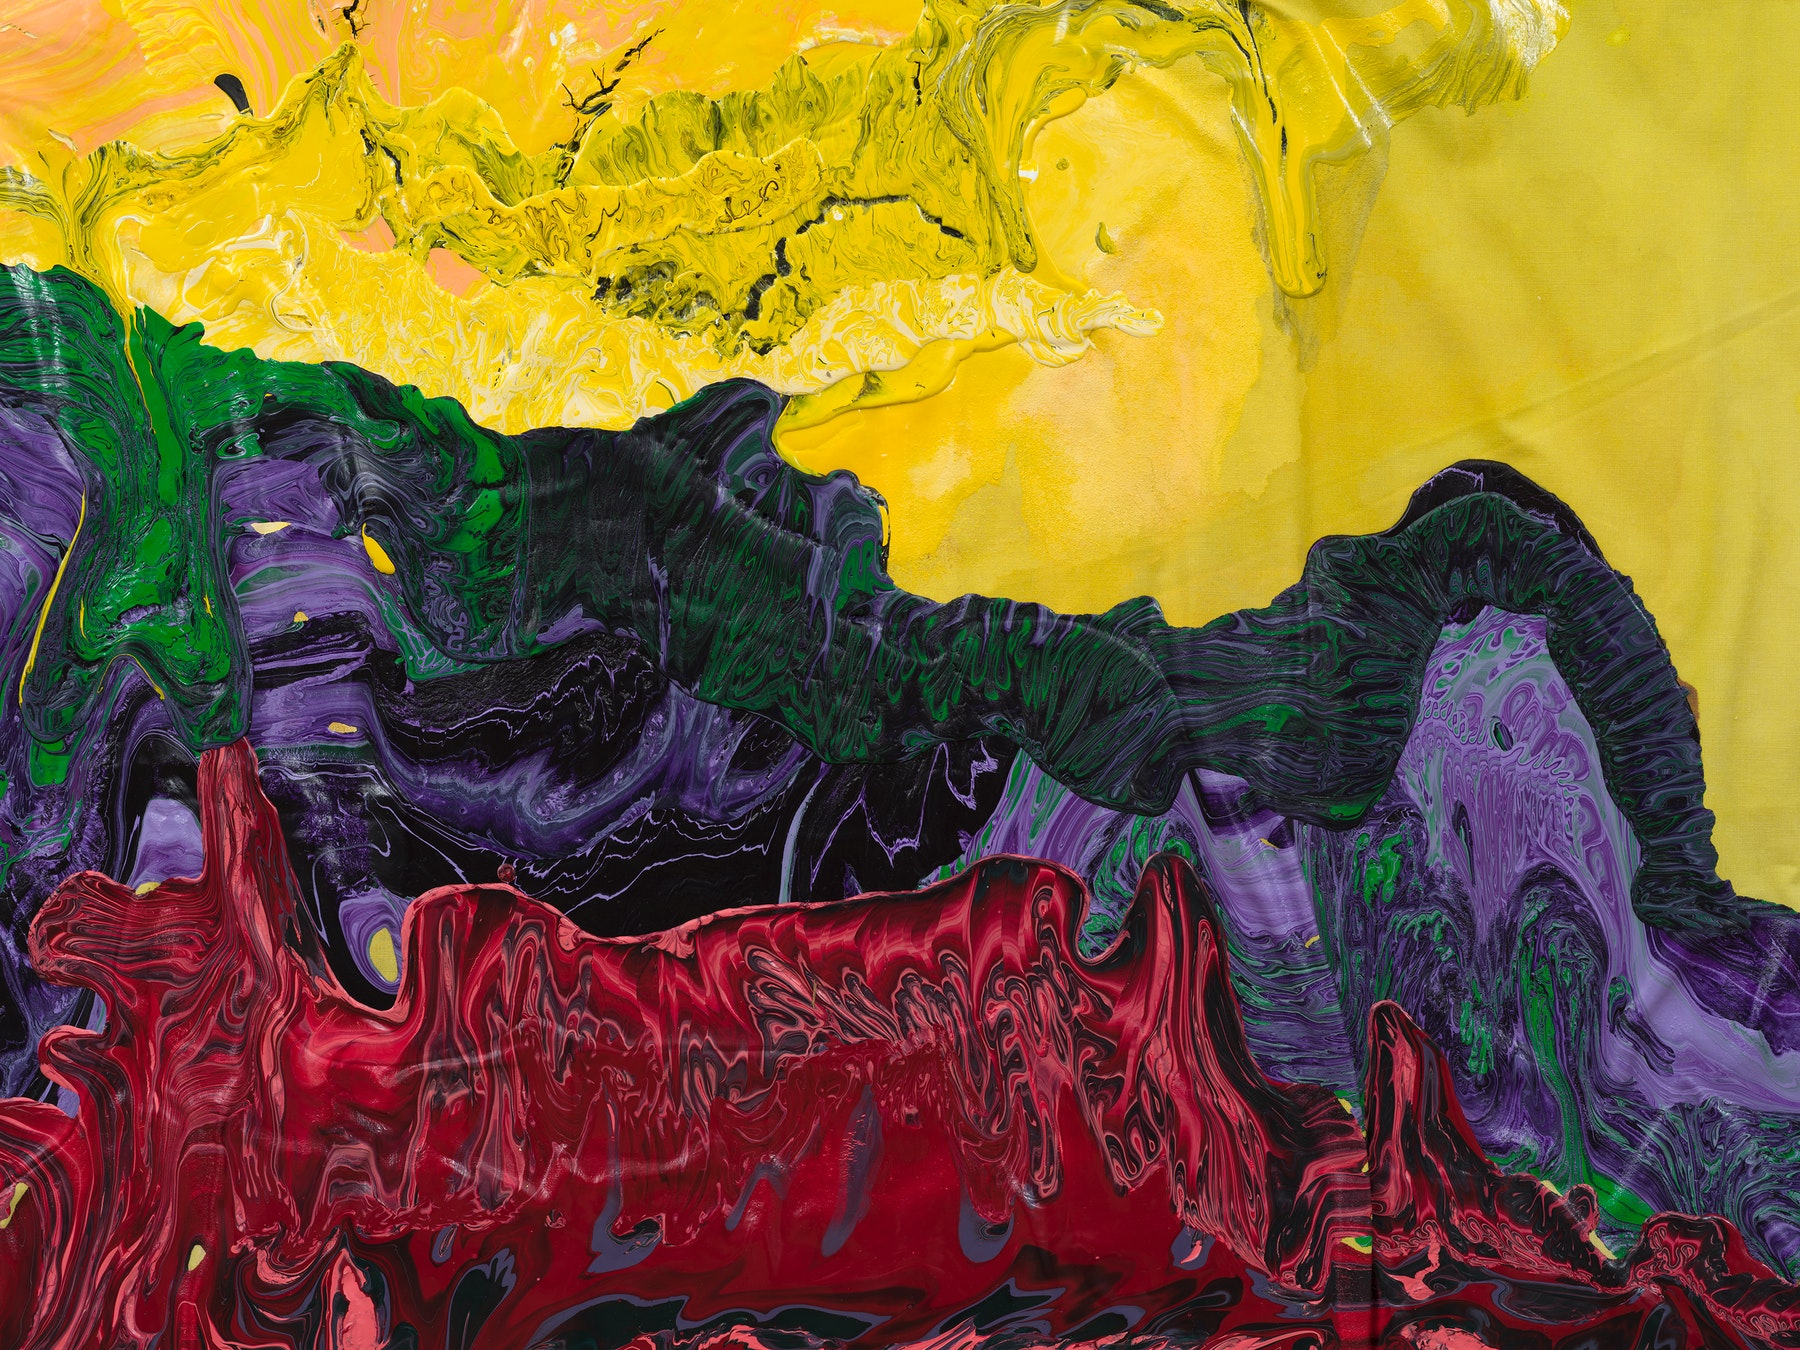 """Rodney McMillian """"Sun with landscape,"""" 2021 Latex, acrylic and ink on bedsheet 97"""" x 71"""" x 3"""" [HxWxD] (246.38 x 180.34 x 7.62 cm) Inventory #MCR420 Courtesy of the artist and Vielmetter Los Angeles Photo credit: Jeff McLane"""